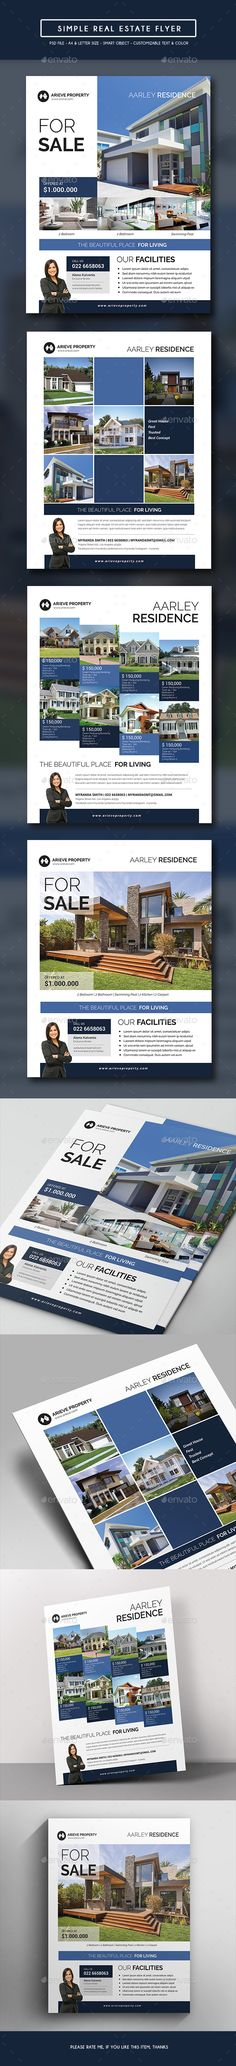 Simple Real Estate Flyer Template PSD. Download here: http://graphicriver.net/item/simple-real-estate-flyer/14837759?ref=ksioks